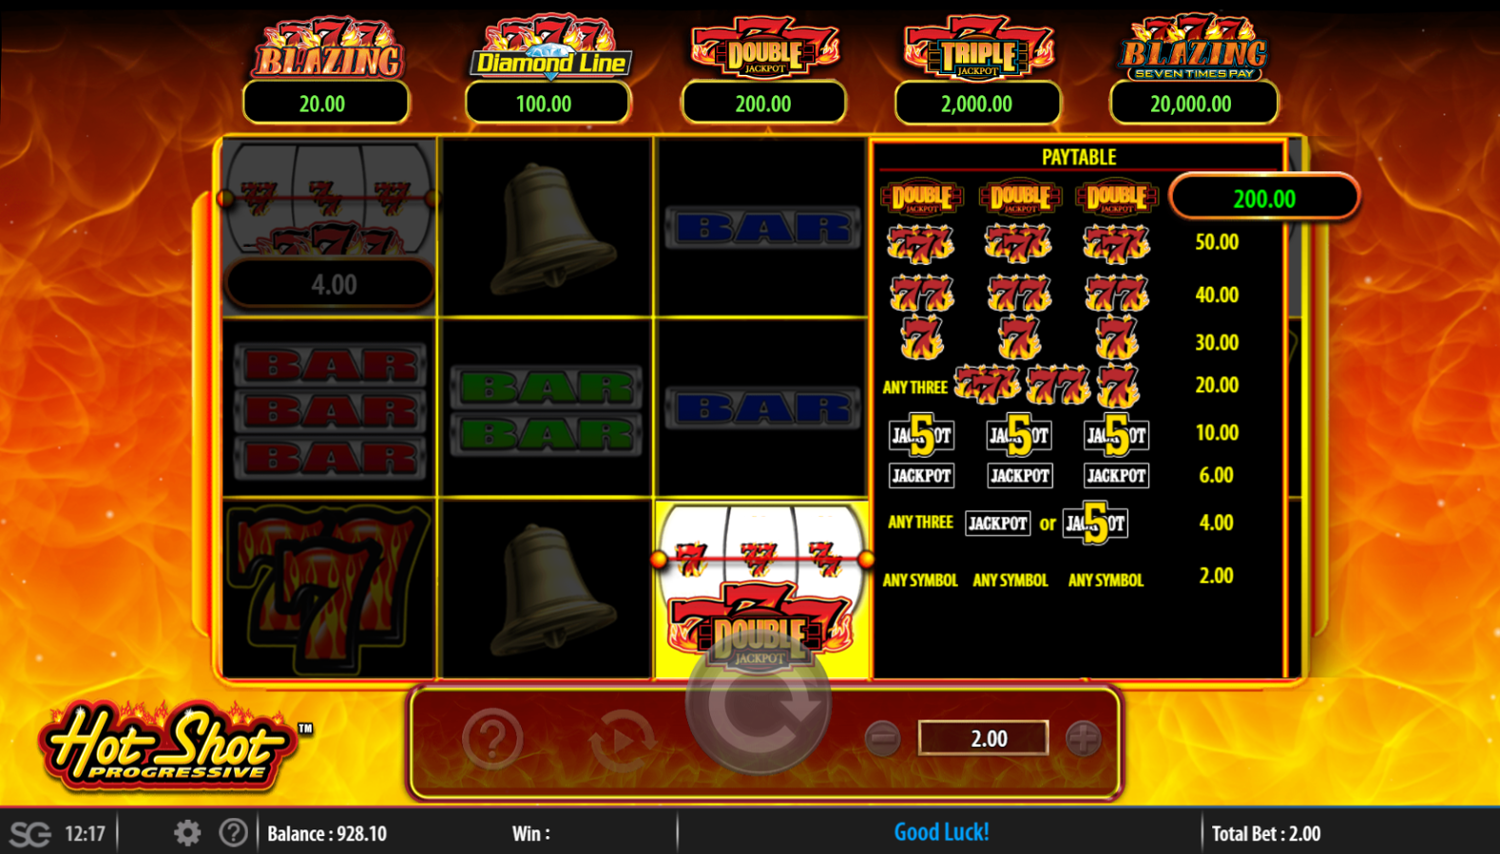 Hot Shot Progressive - Double 7 jackpot paytable